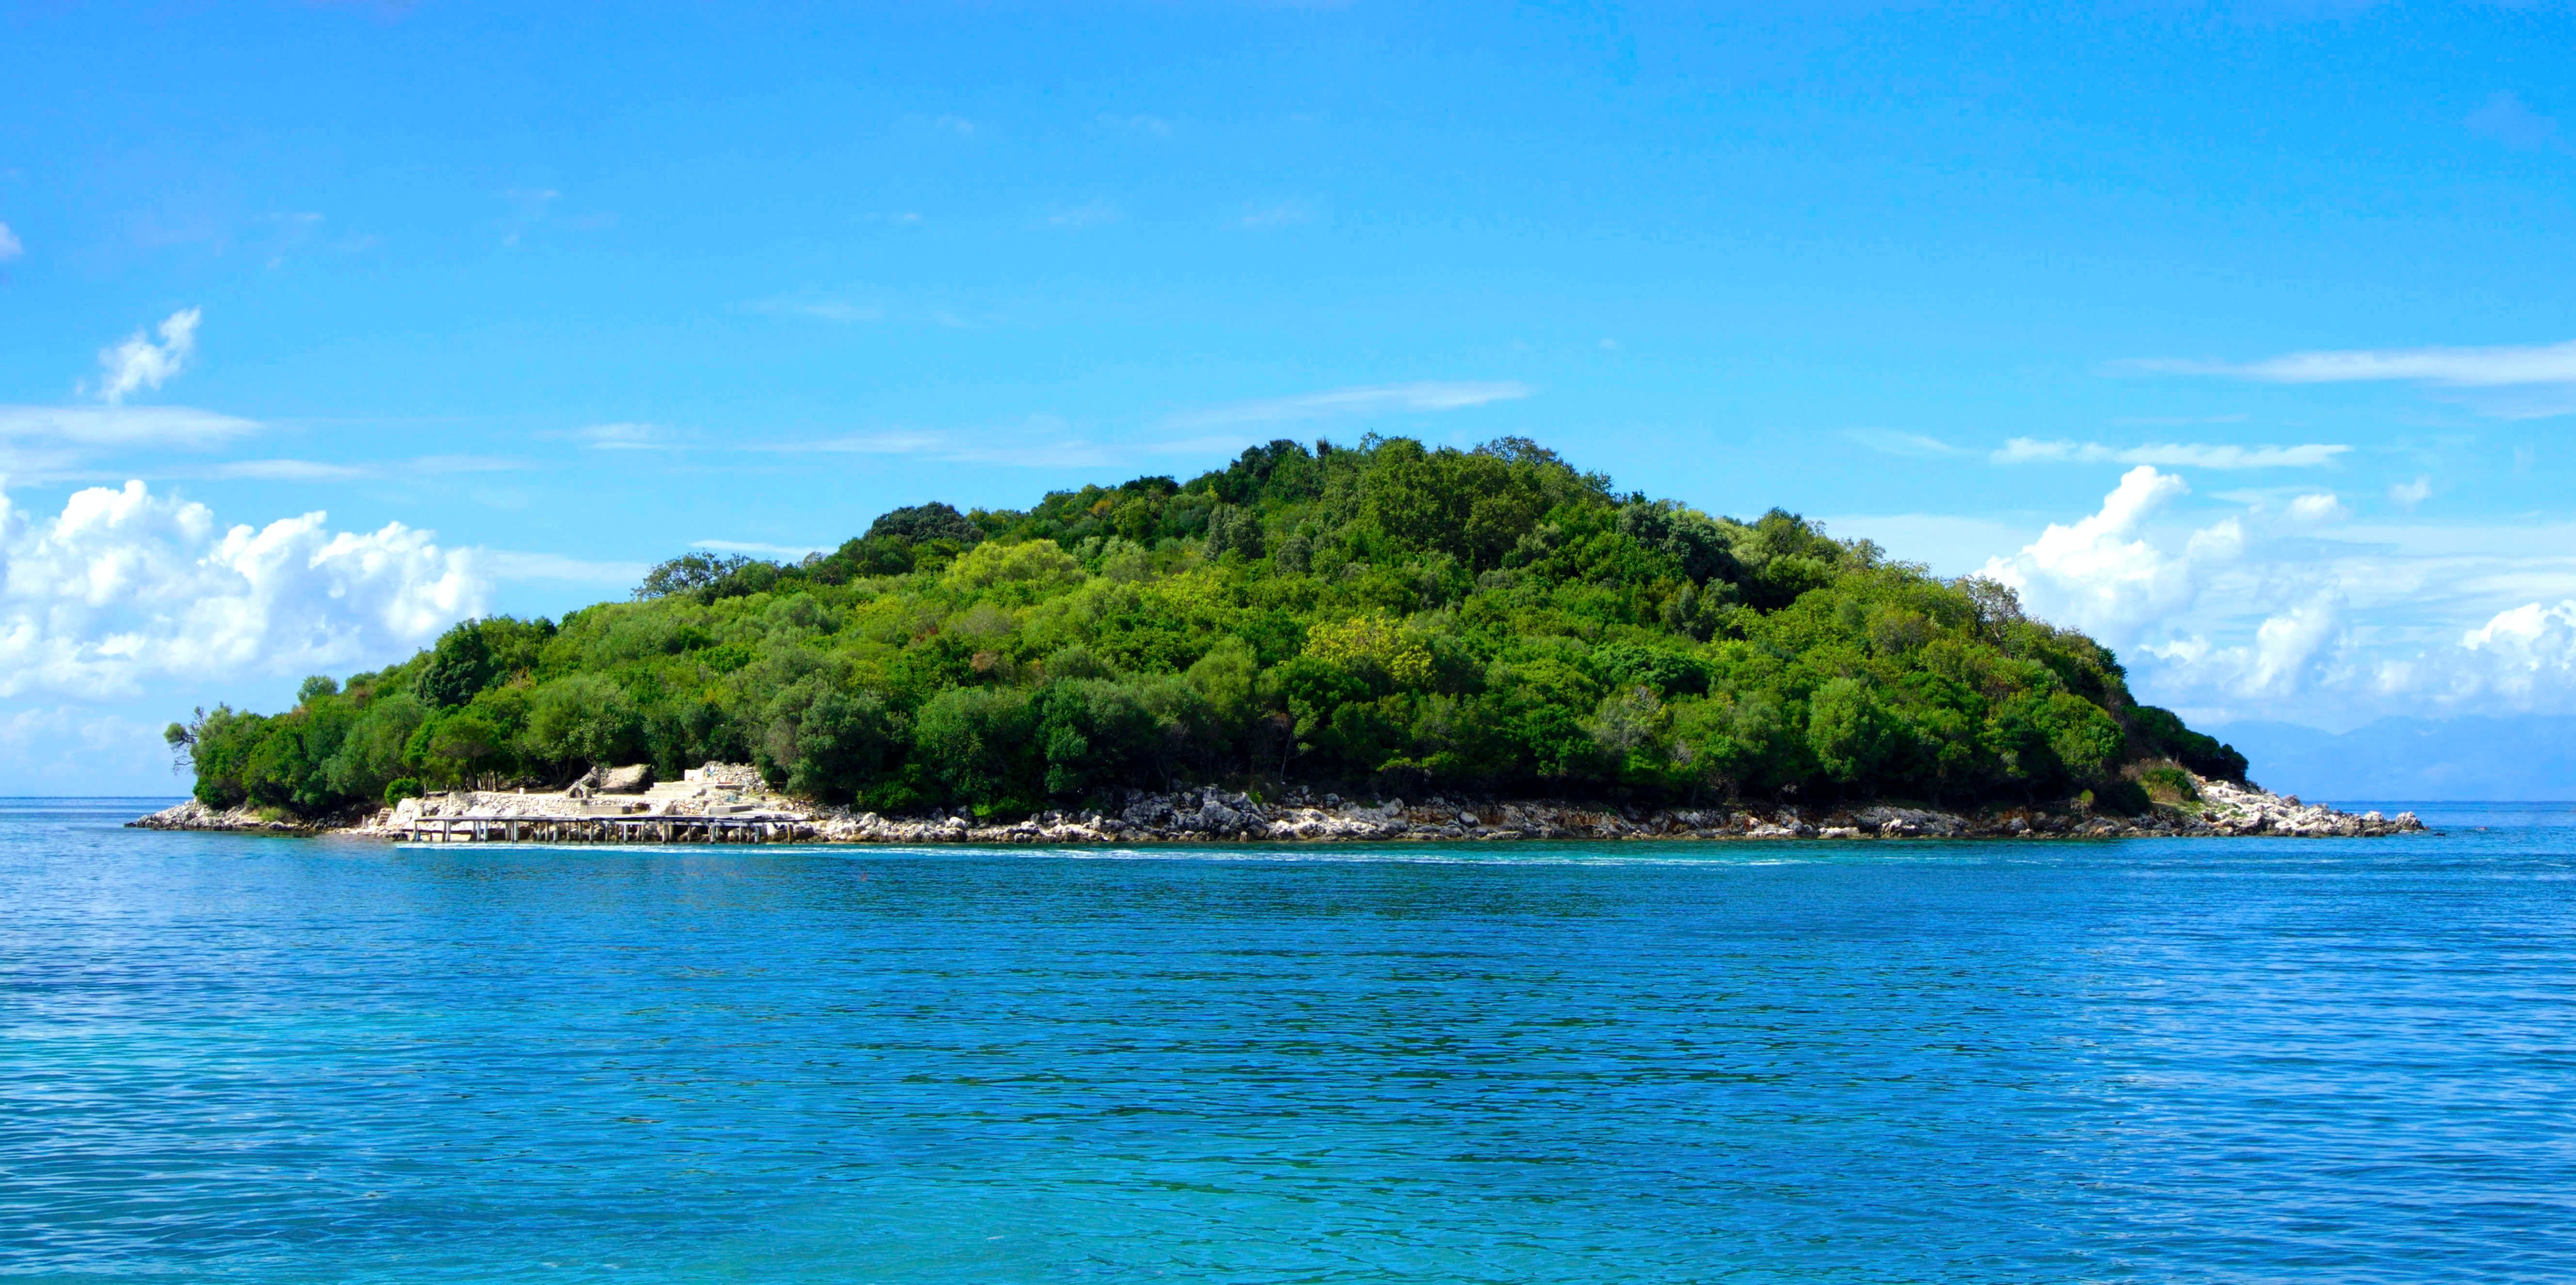 Deserted Tropical Islands For Sale